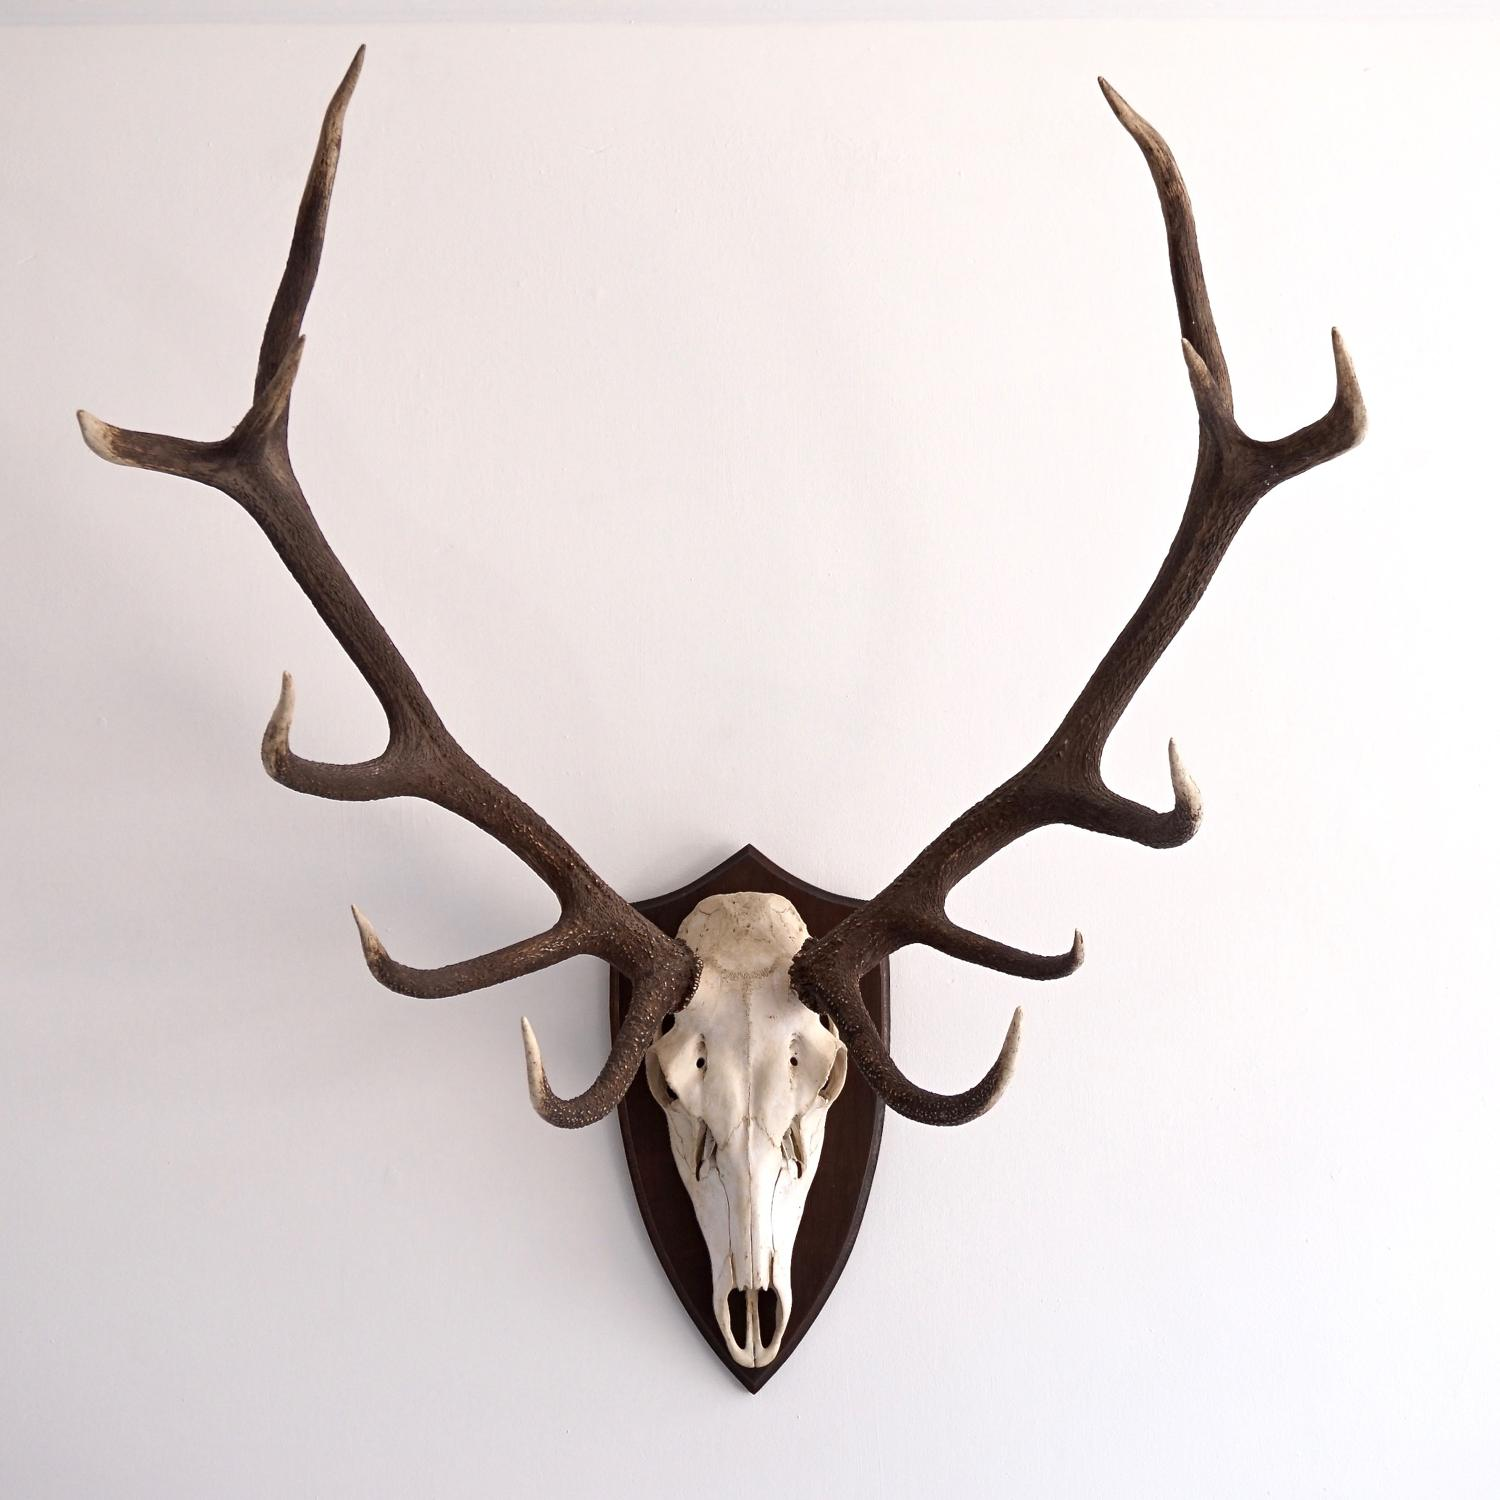 MAGNIFICENT 12 POINT RED STAG ANTLER MOUNT